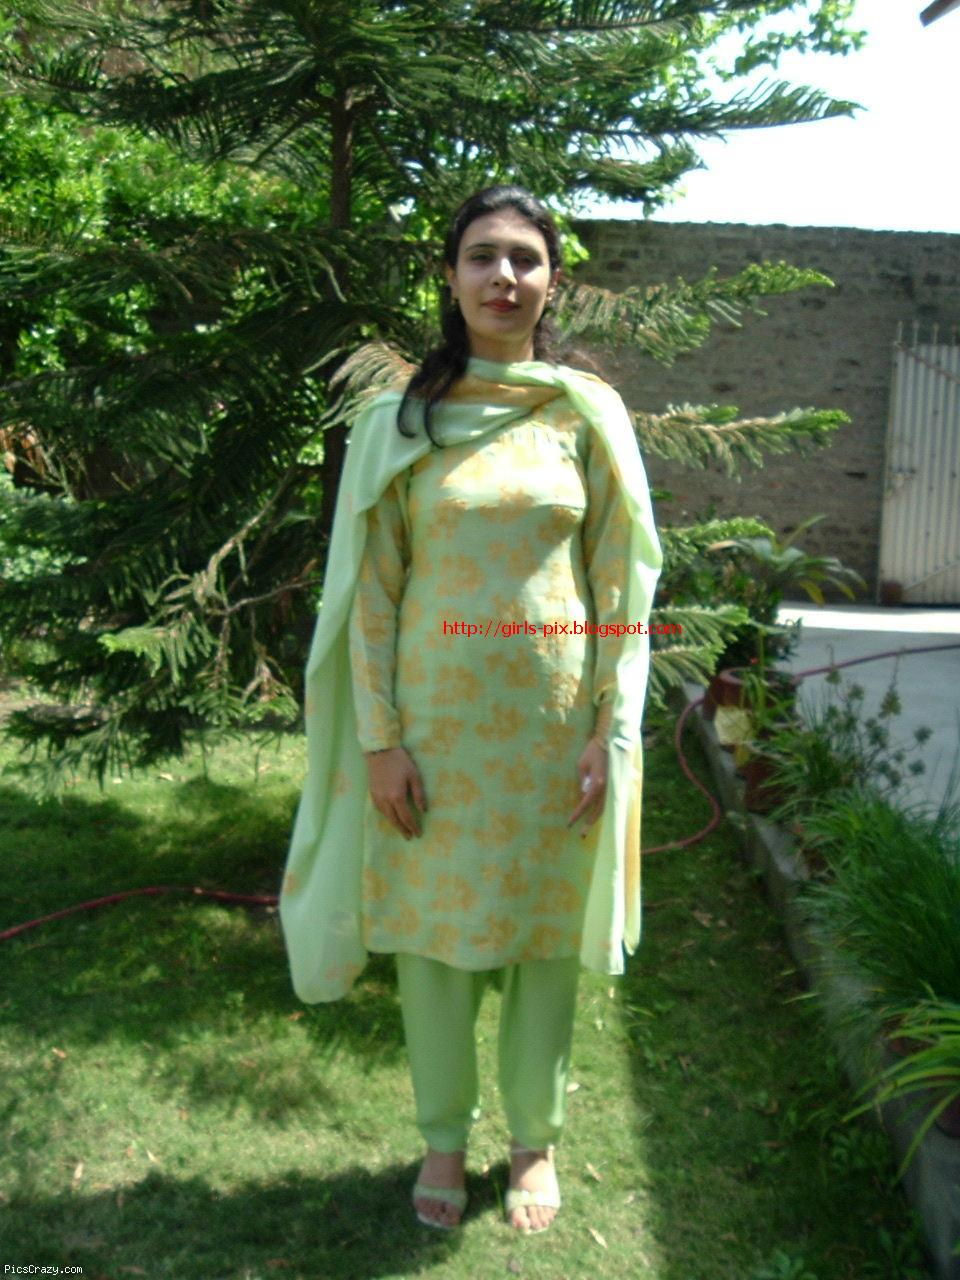 Desi Hot Girls In Shalwar Qameeez - Girlzz Pixx -Beautiful -9039